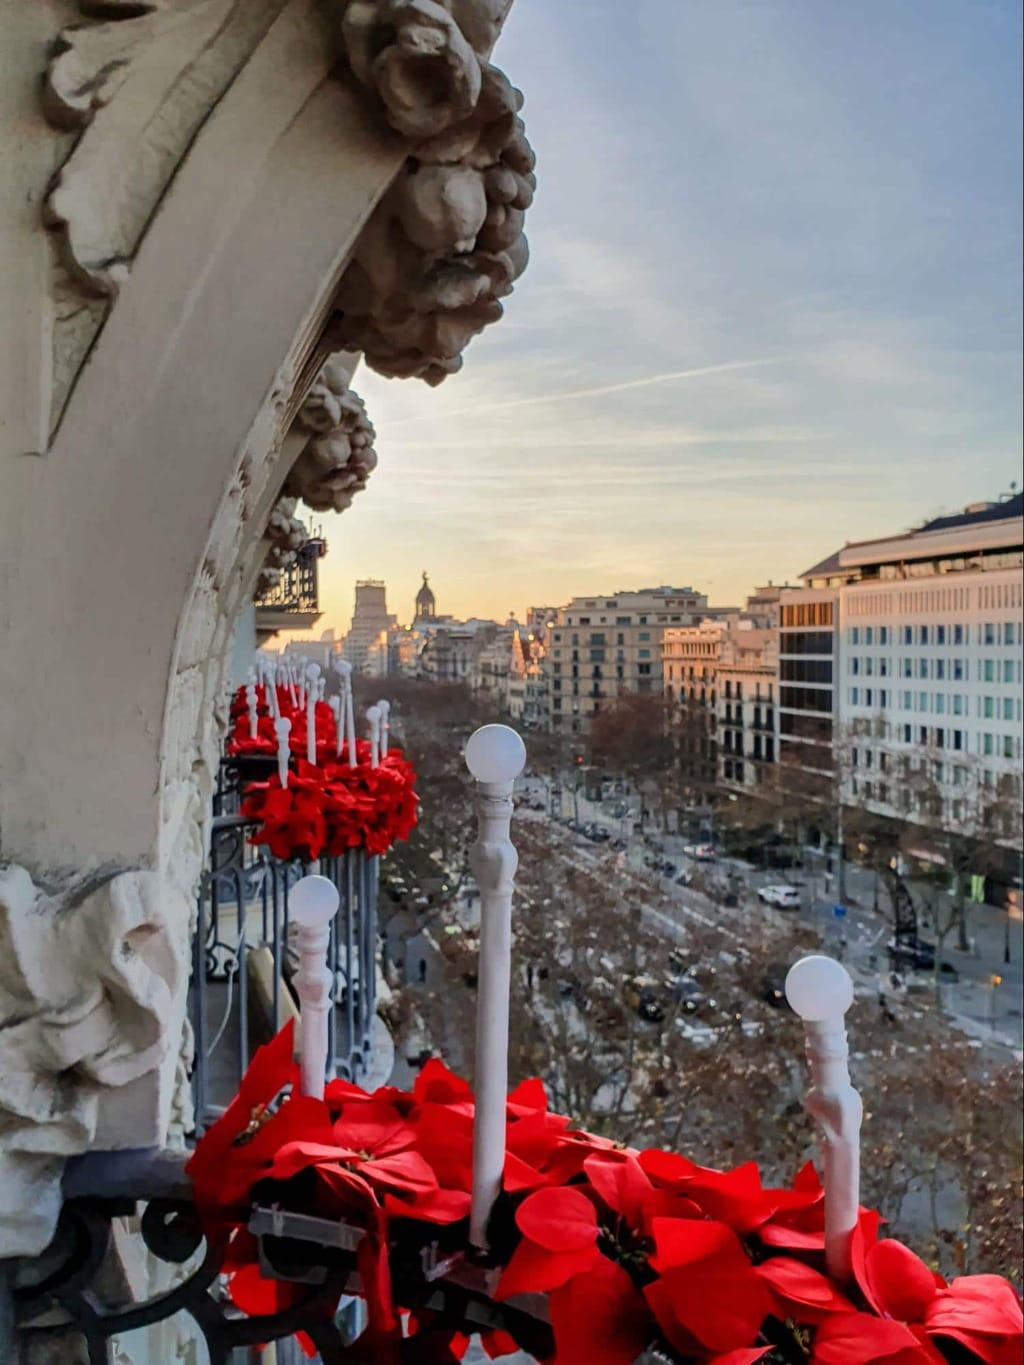 Majestic Hotel & Spa Barcelona Christmas decorations